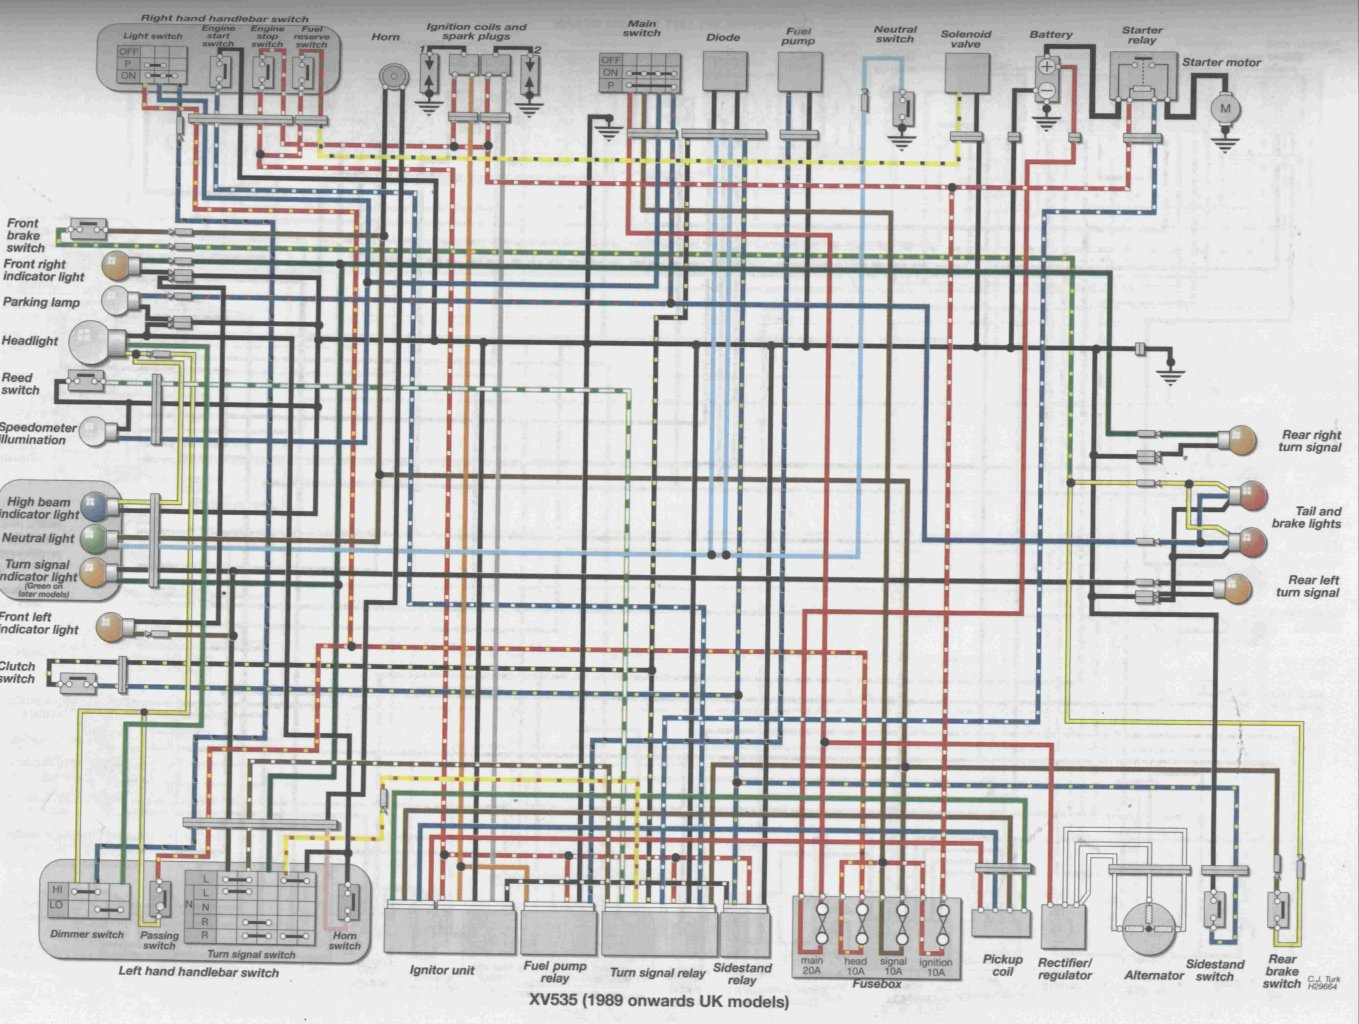 here's a link to a suitable wiring diagram that may help you (courtesy of  virago tech com):